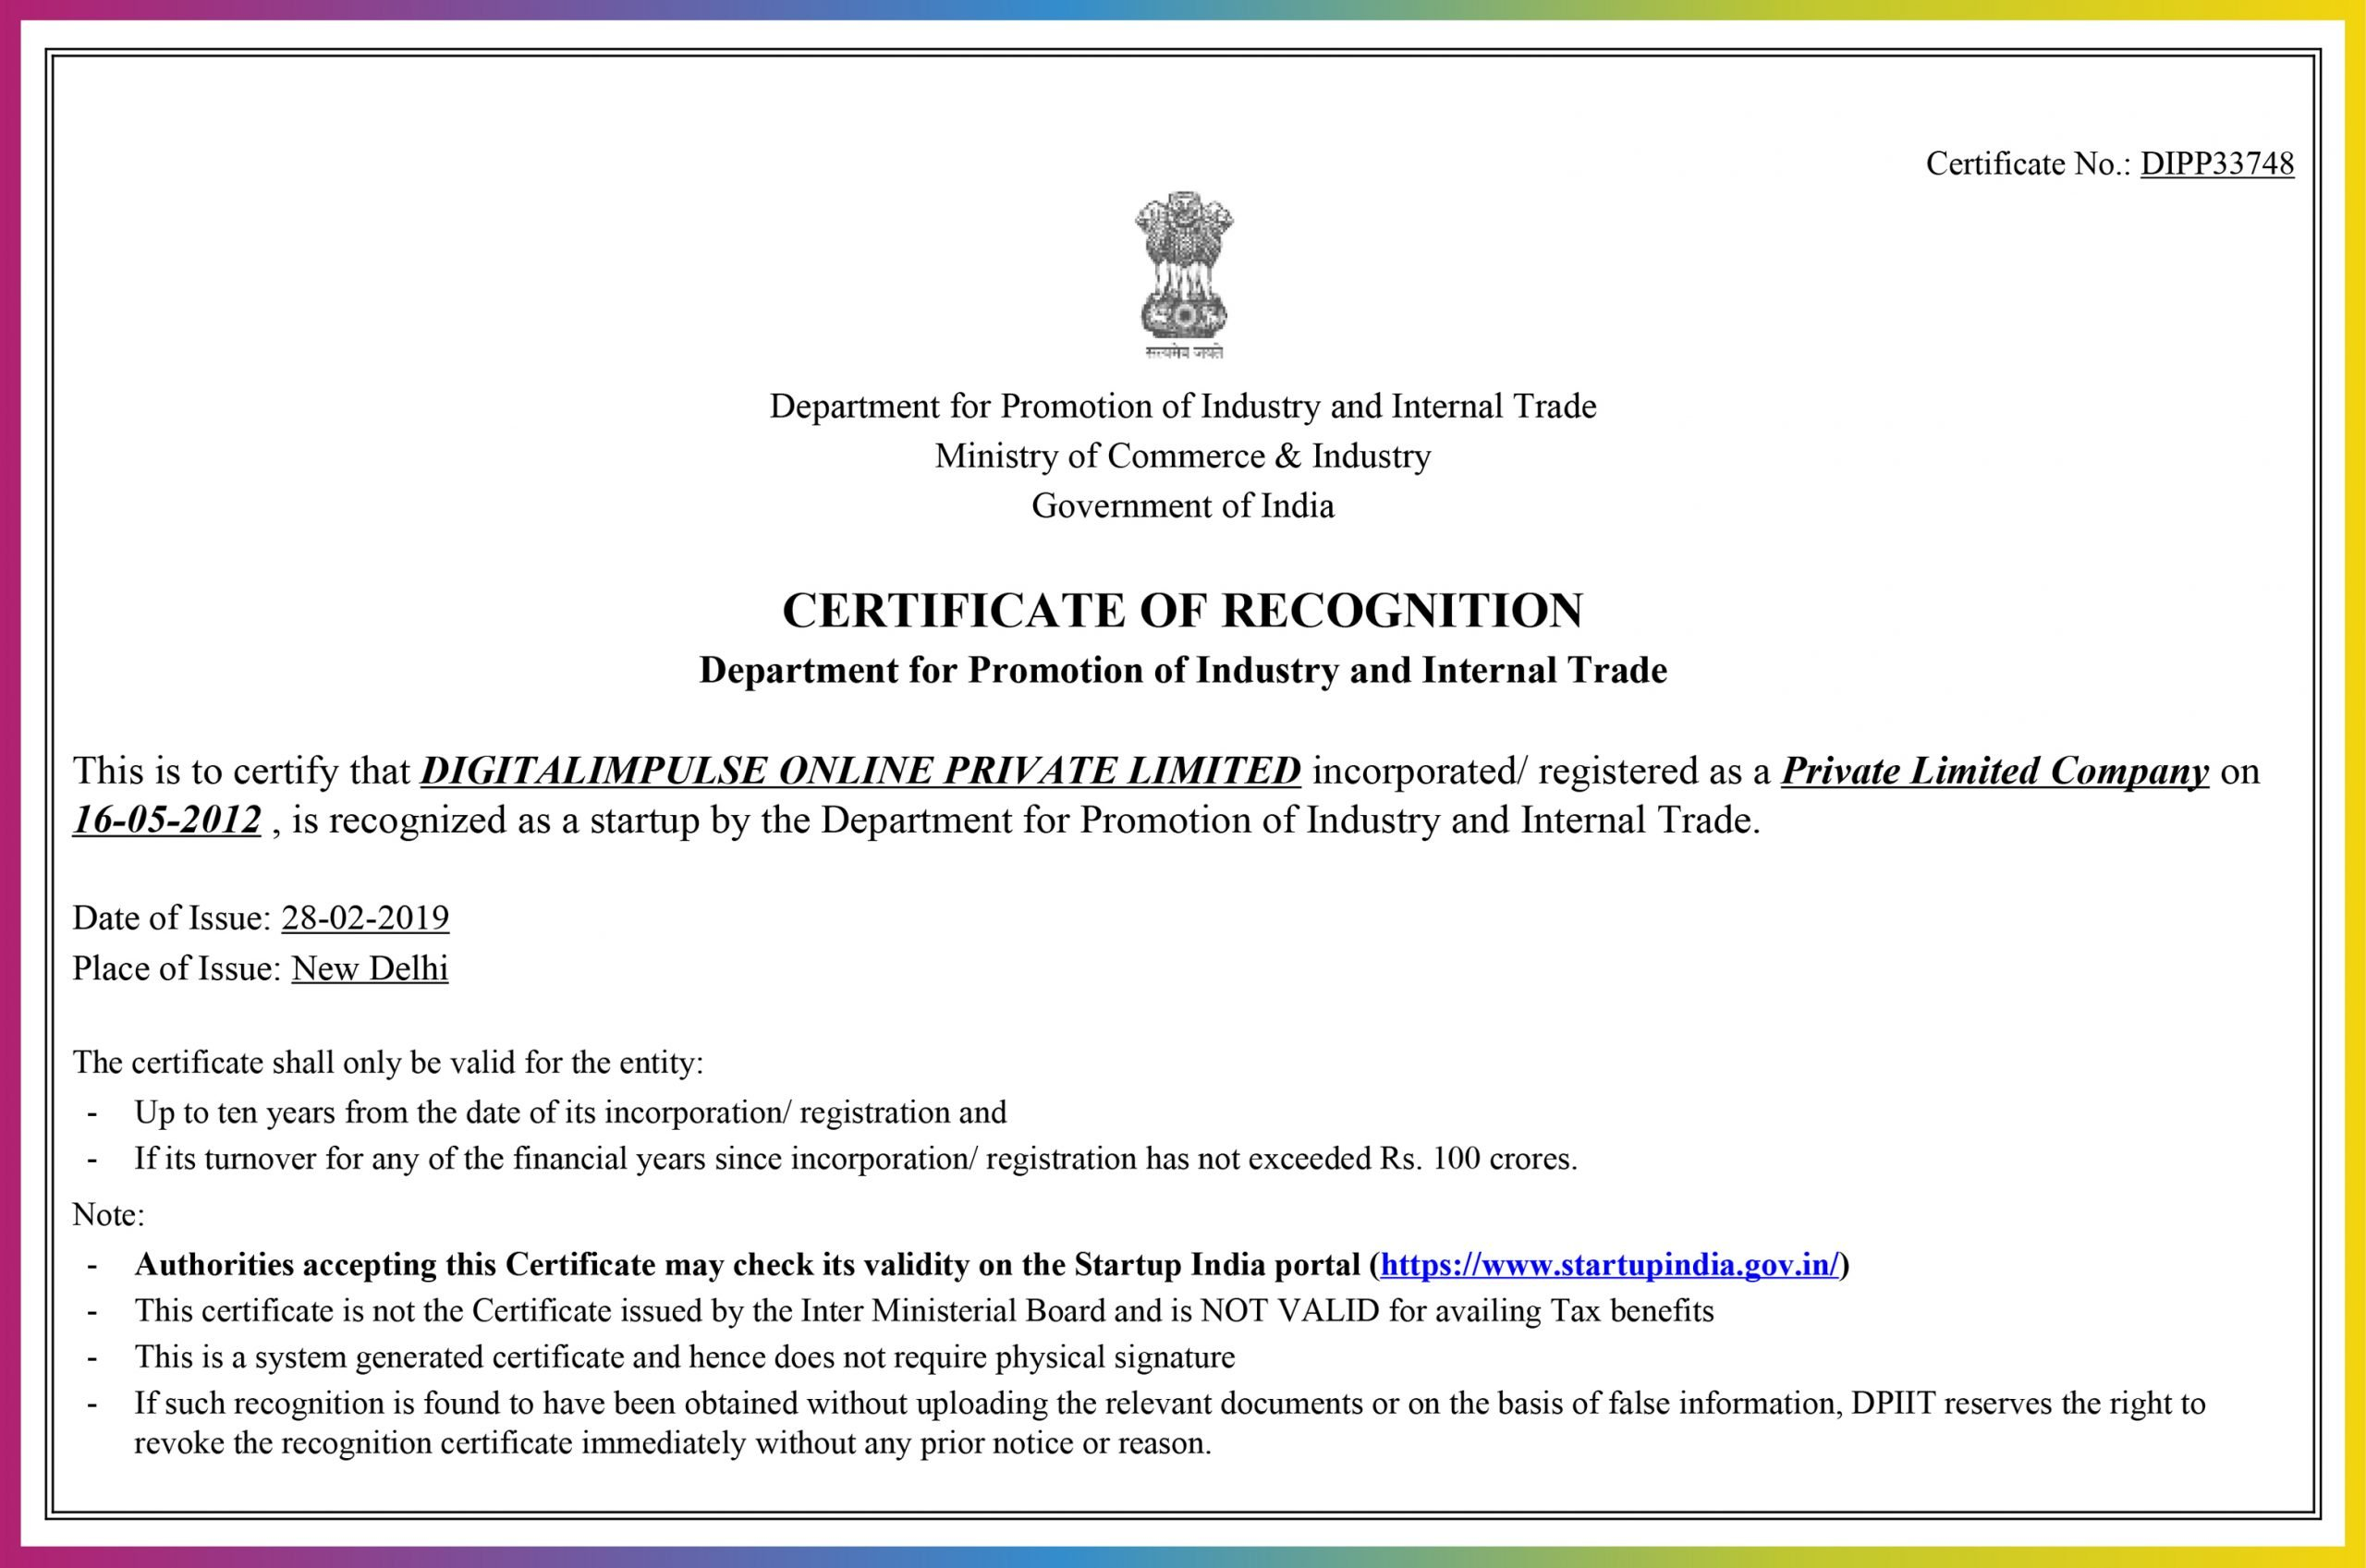 Digitalimpulse Online Private Limited Certificate of Recognition